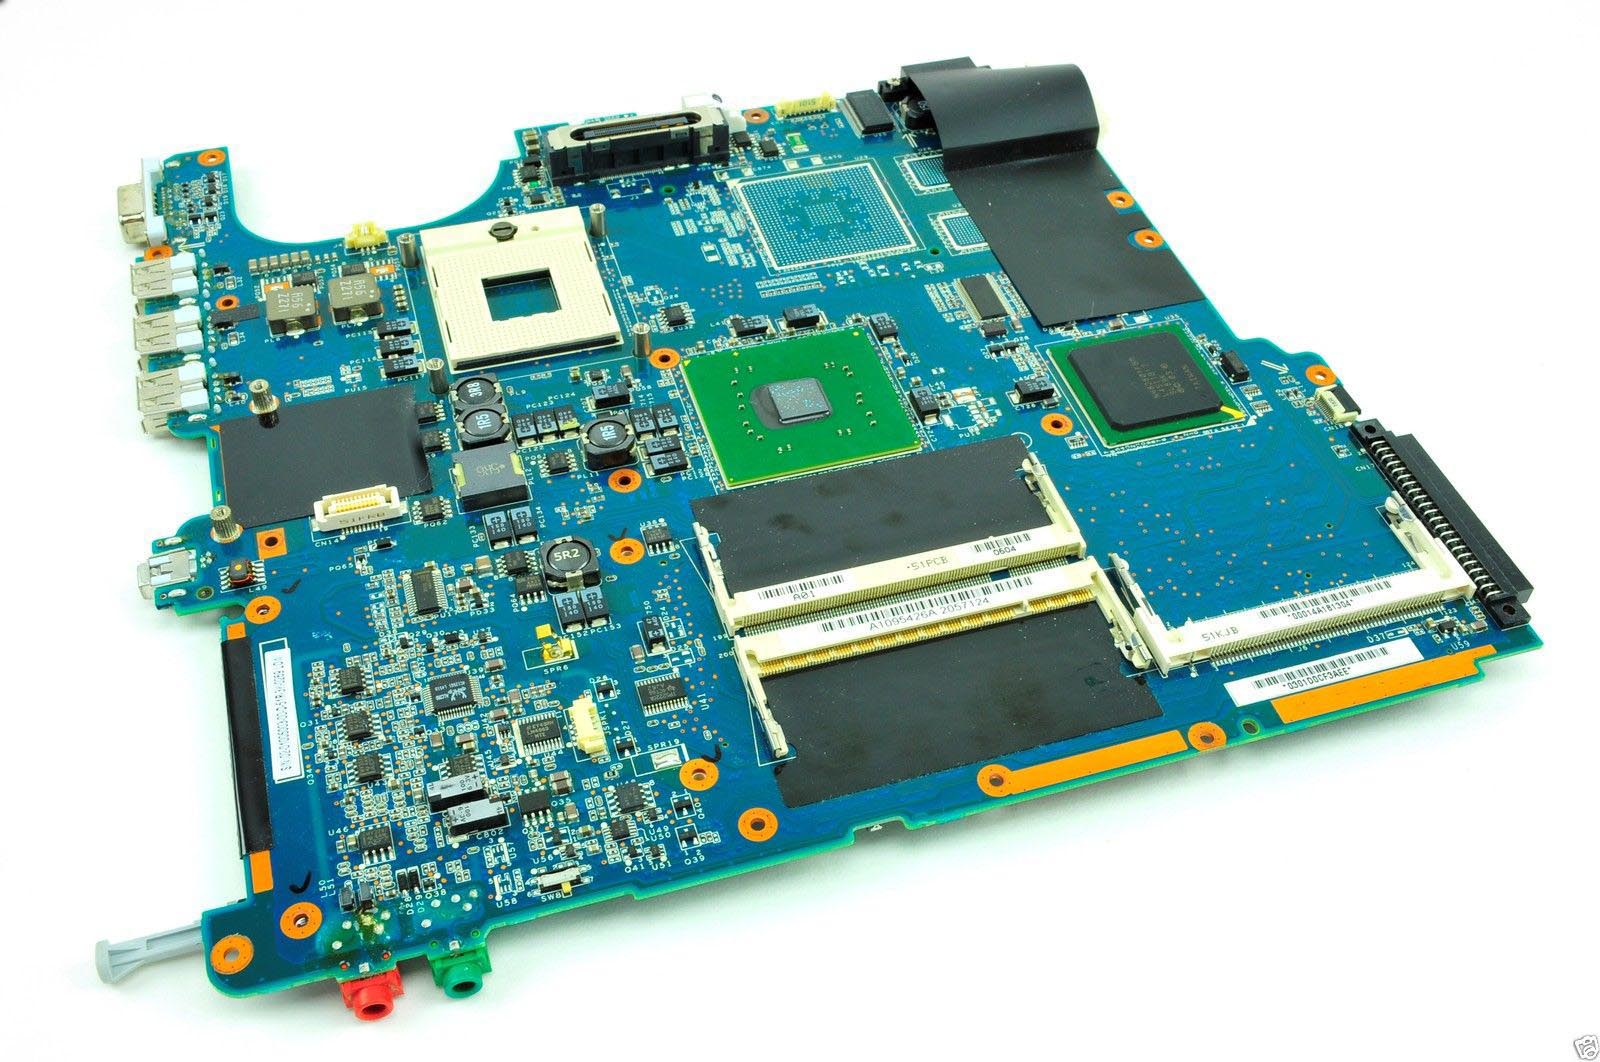 SHELI MBX 130 laptop Motherboard For Sony MBX-130 MS01-M/B A1095426A 1P-0041200-8010 for intel cpu with integrated graphics card sheli mbx 143 laptop motherboard for sony mbx 143 ms04 m b a1142569a 1p 0058100 8012 for intel cpu with integrated graphics card